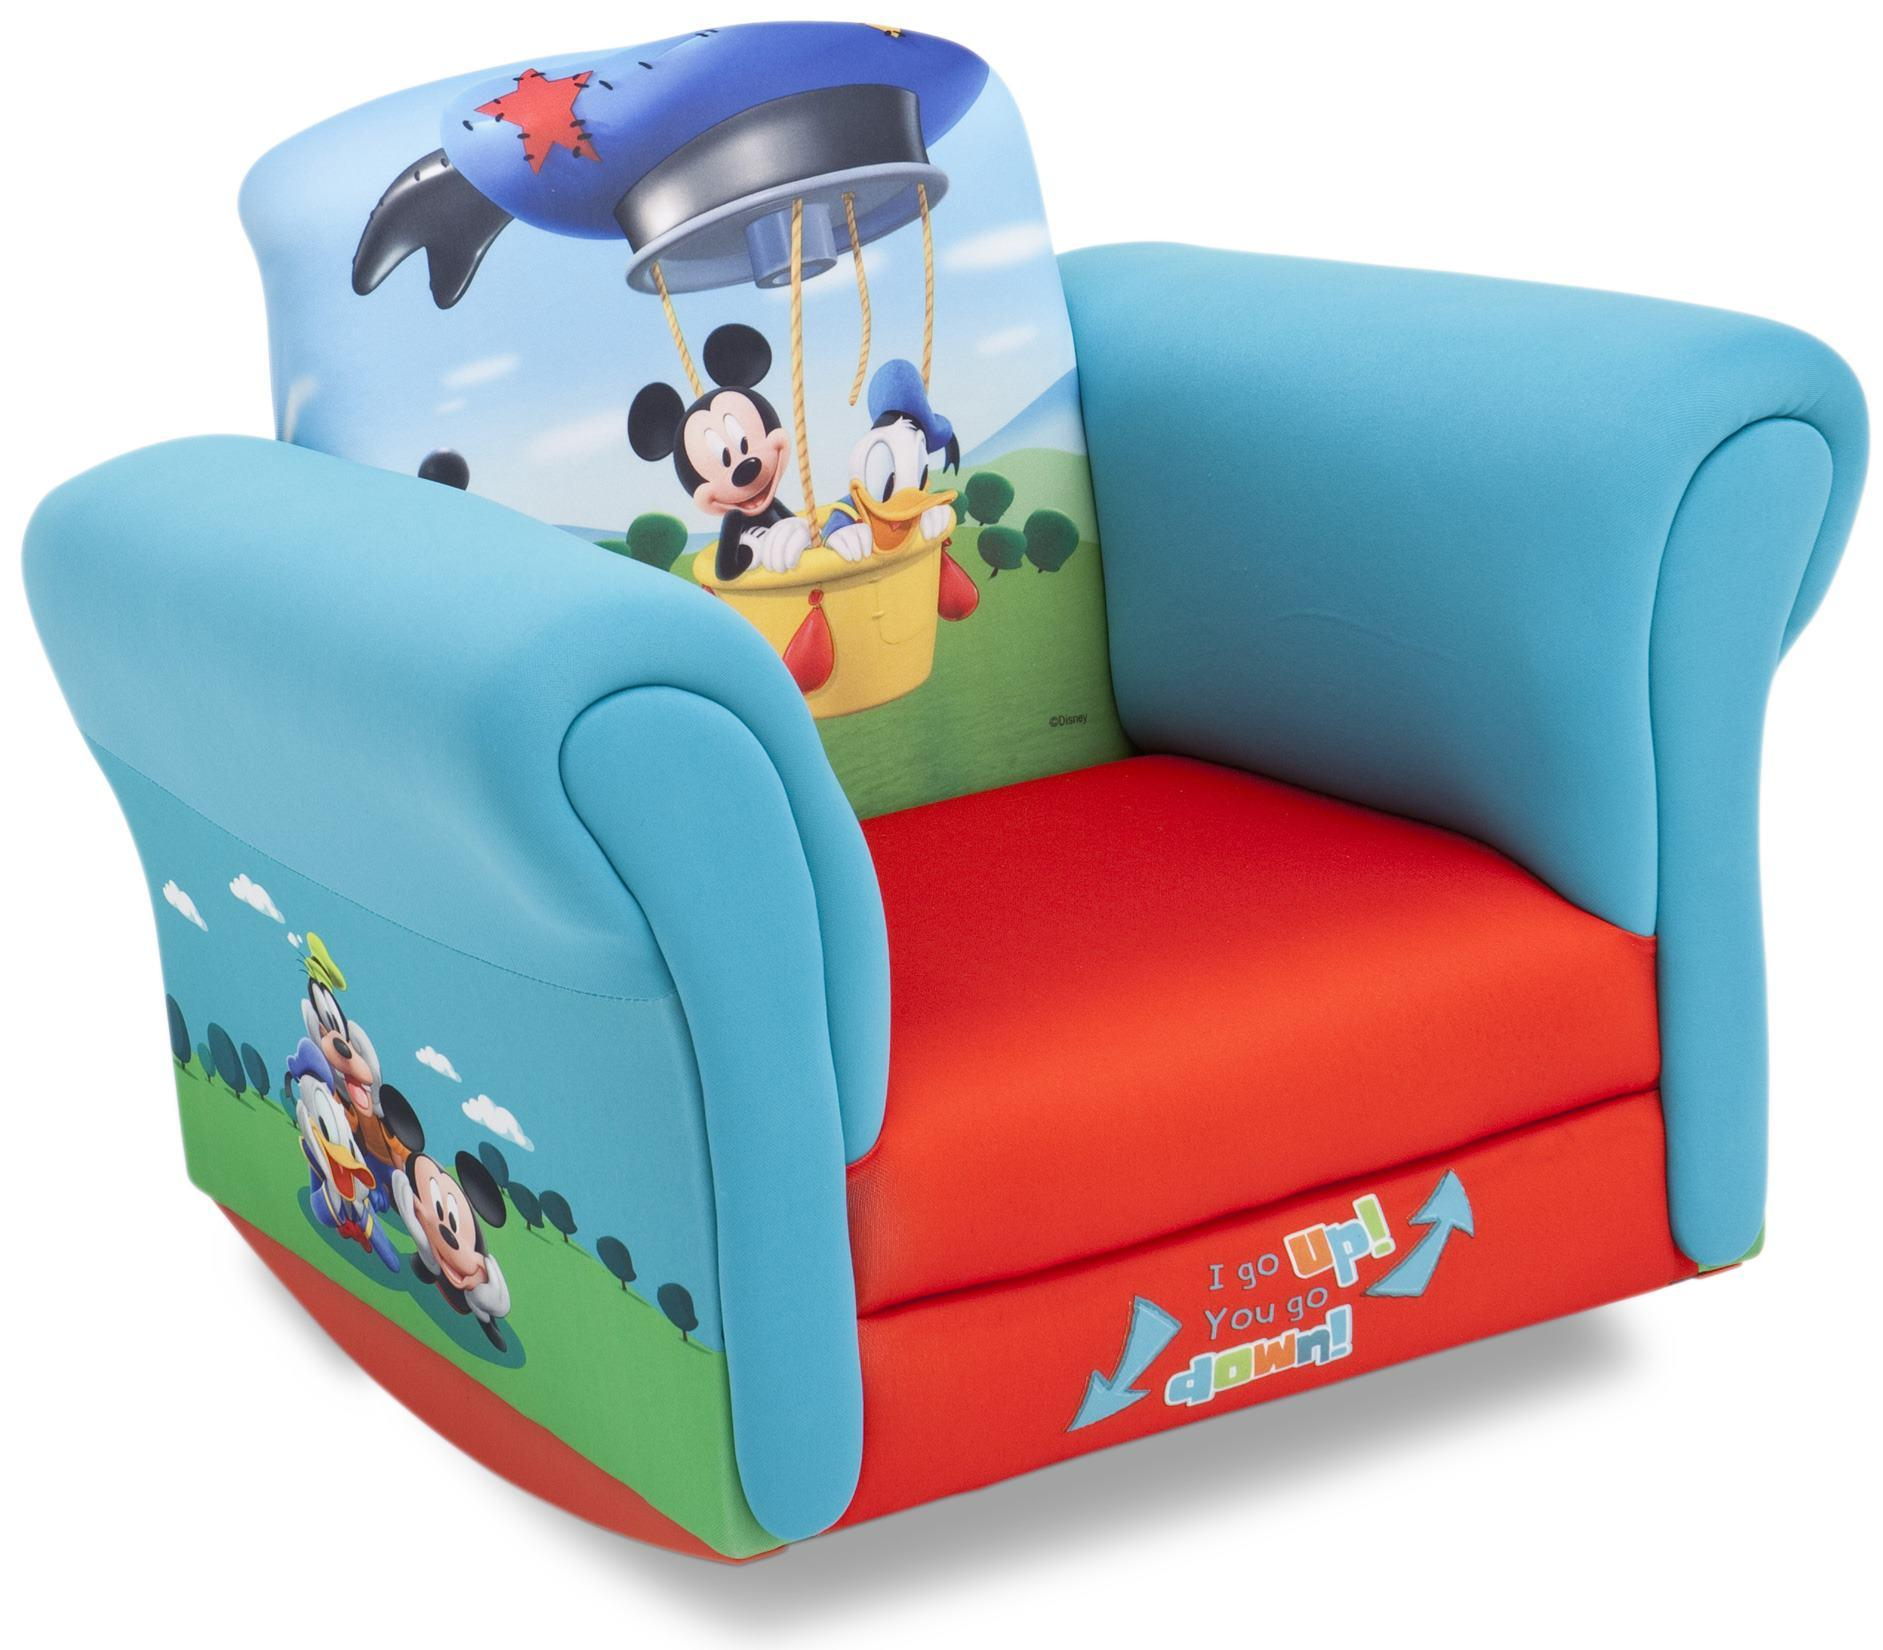 Sofa Chair For Toddler Delta Upholstered Child 39s Mickey Mouse Rocking Chair Kmart